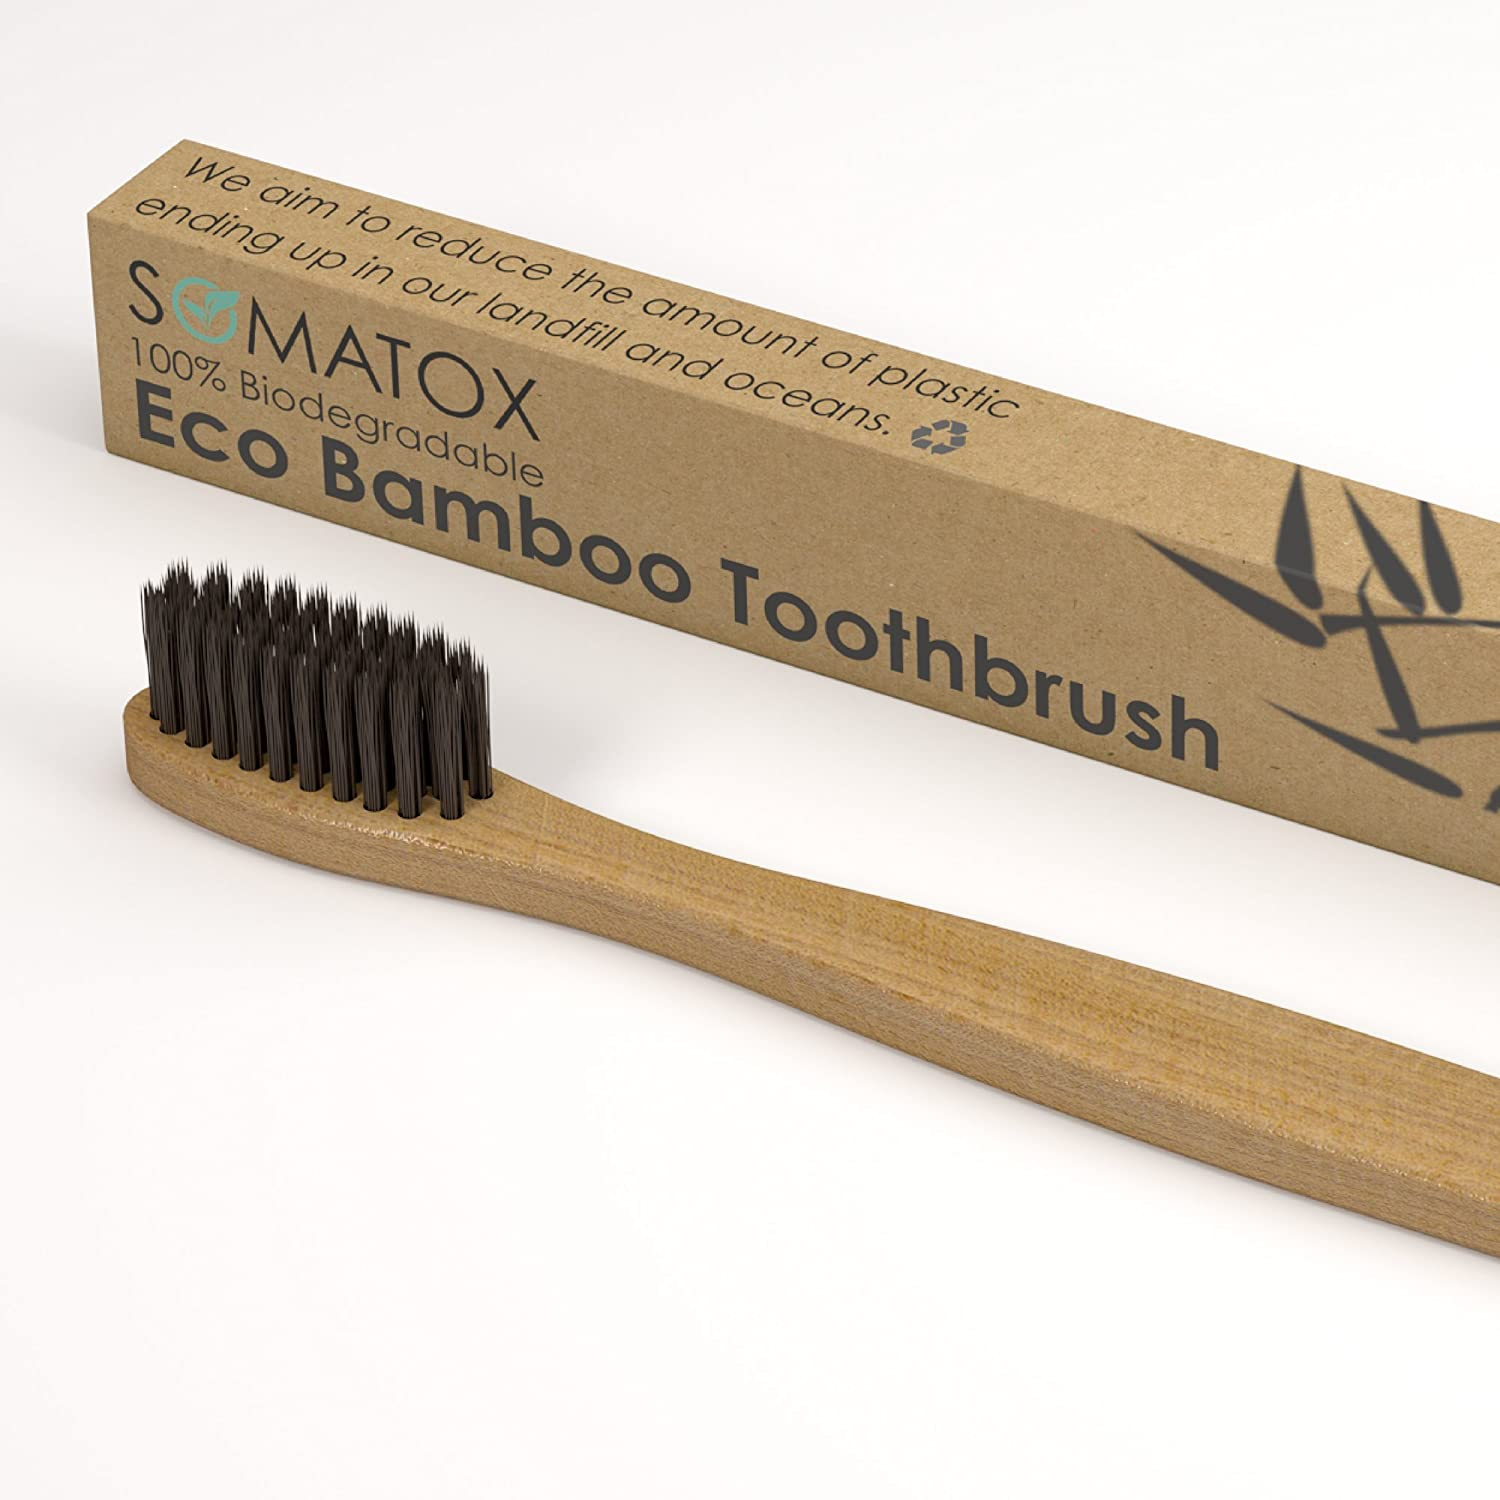 Amazon.com: SOMATOX - Bamboo Eco Toothbrush With Activated Charcoal Bristles - Natural Teeth Whitening • Medium Soft Biodegradable Bamboo Toothbrush ...